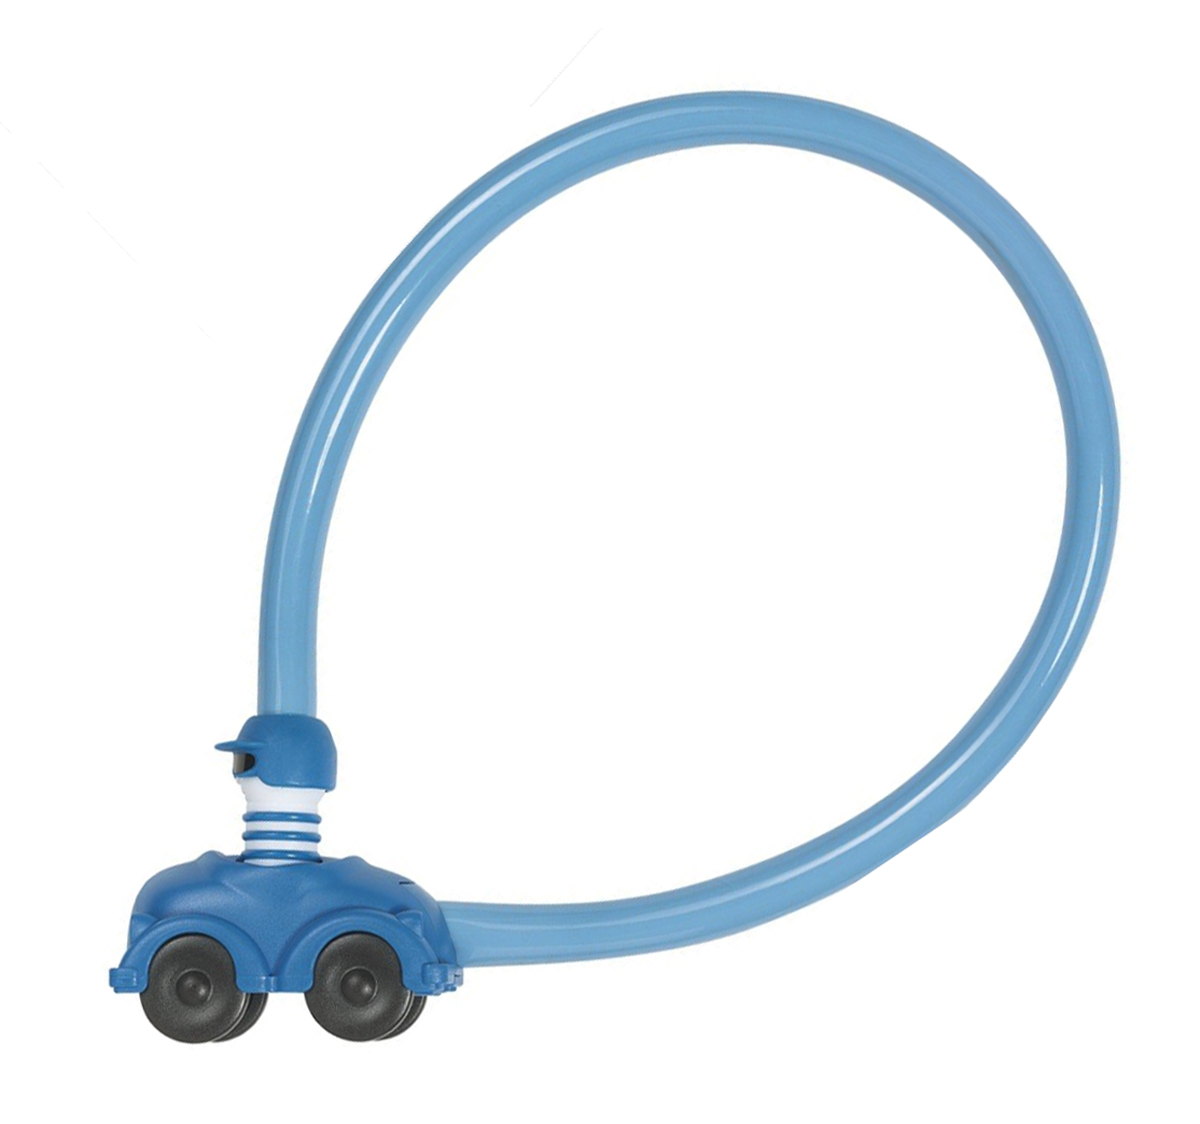 Abus My First 1505 Cable Lock - 4 mm / 55 cm - Blue